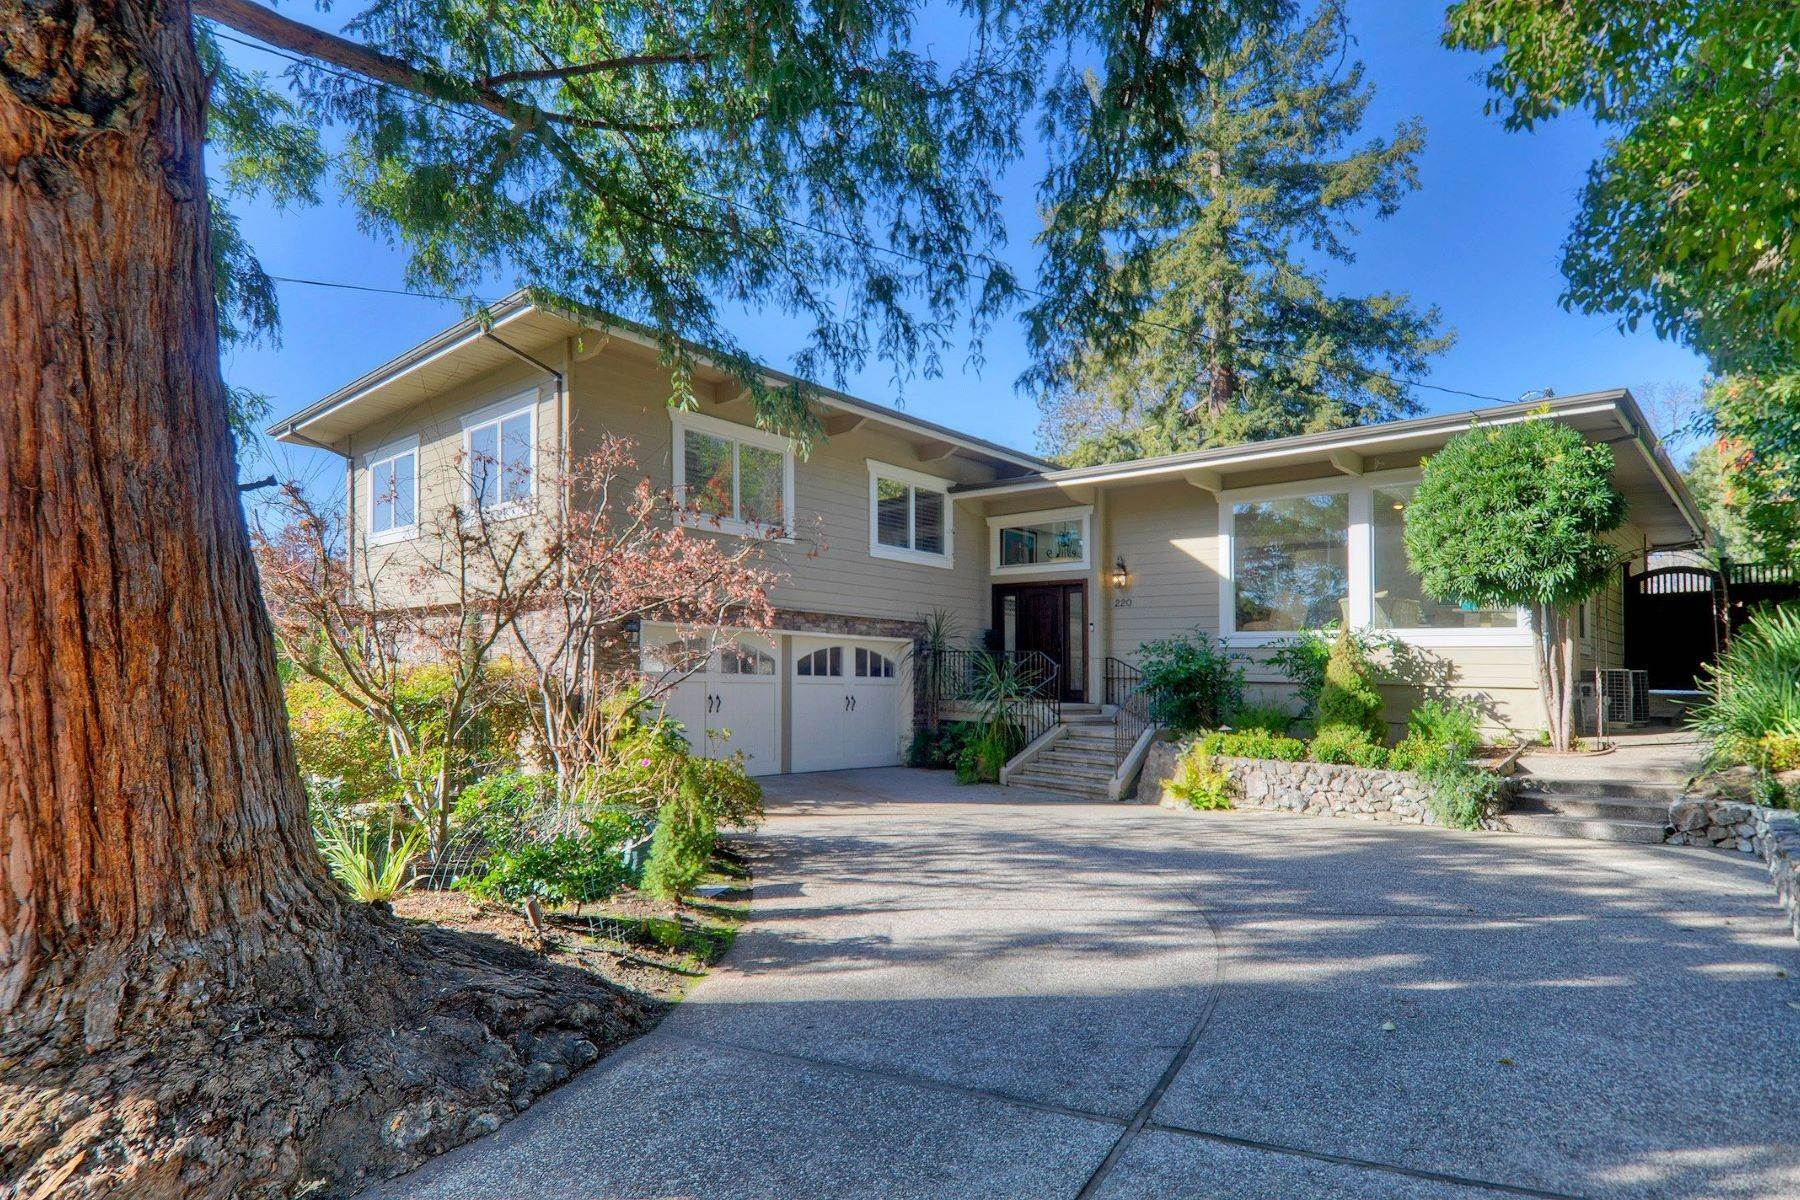 Single Family Homes for Sale at Completely Renovated Mid-Century Retreat 220 Frances Lane San Carlos, California 94070 United States